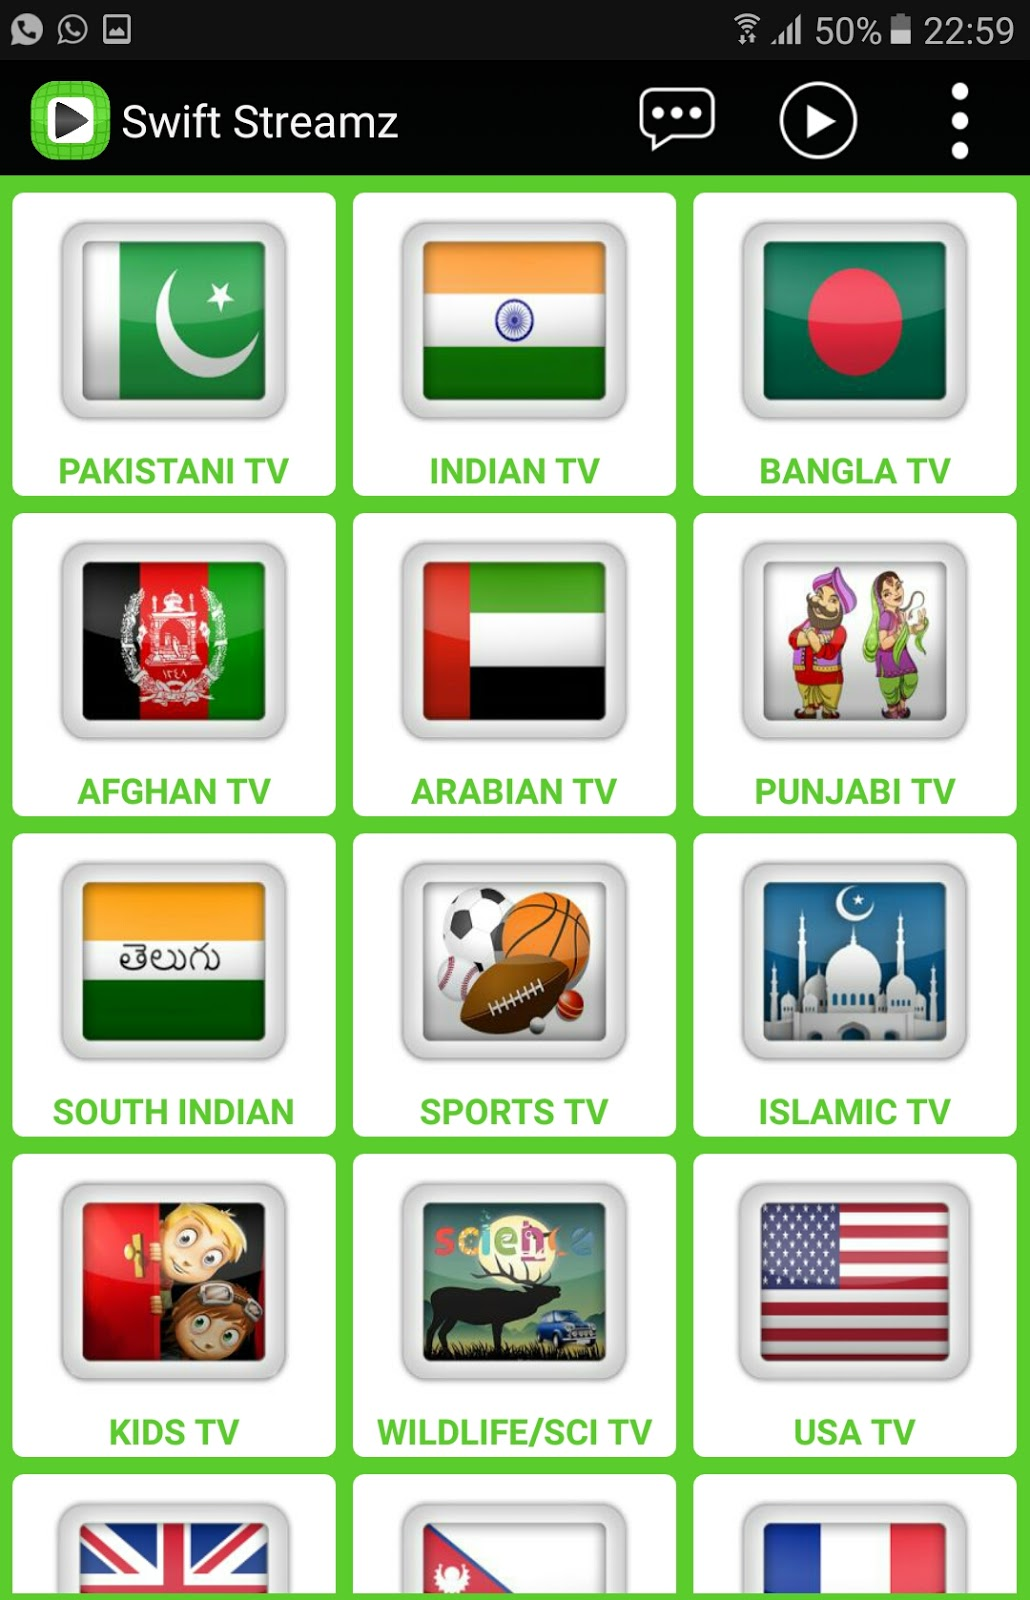 BEST APK FOR LIVE TV IPTV ON ANDROID NO ADS AND FREE-Swift